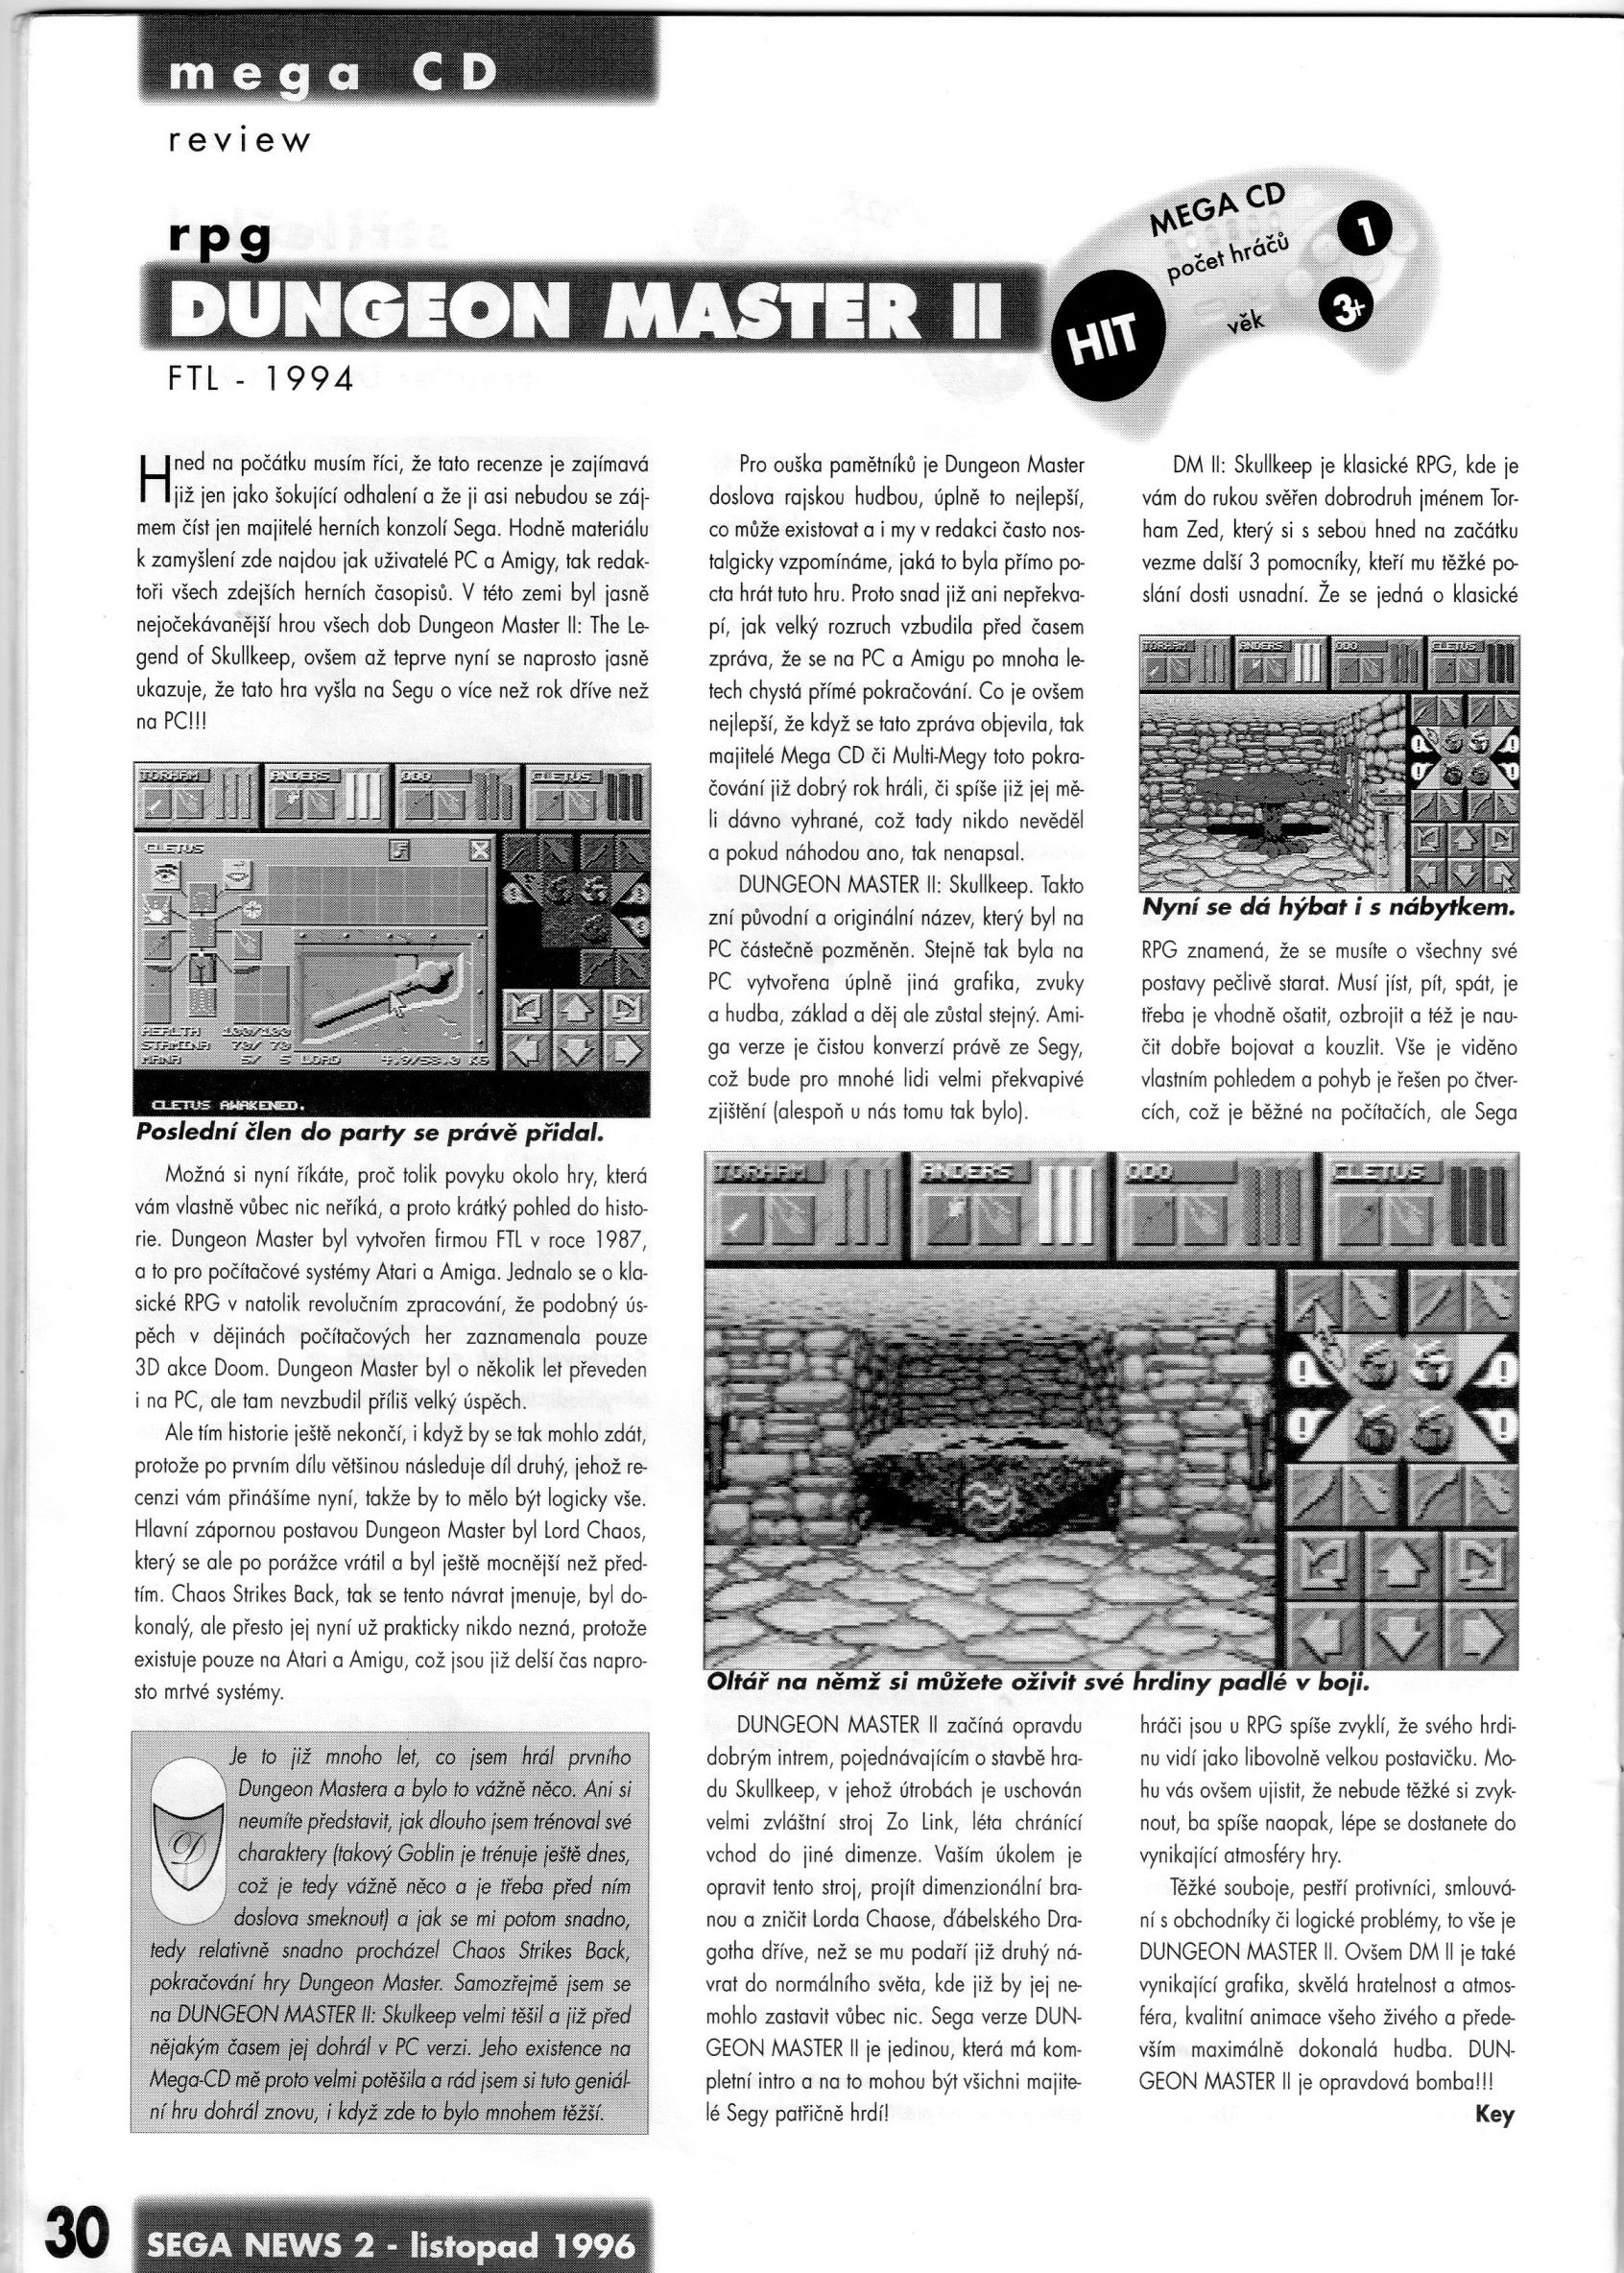 Dungeon Master II for Mega CD Review published in Czech magazine 'Sega News', Issue #2 November 1996, Page 30